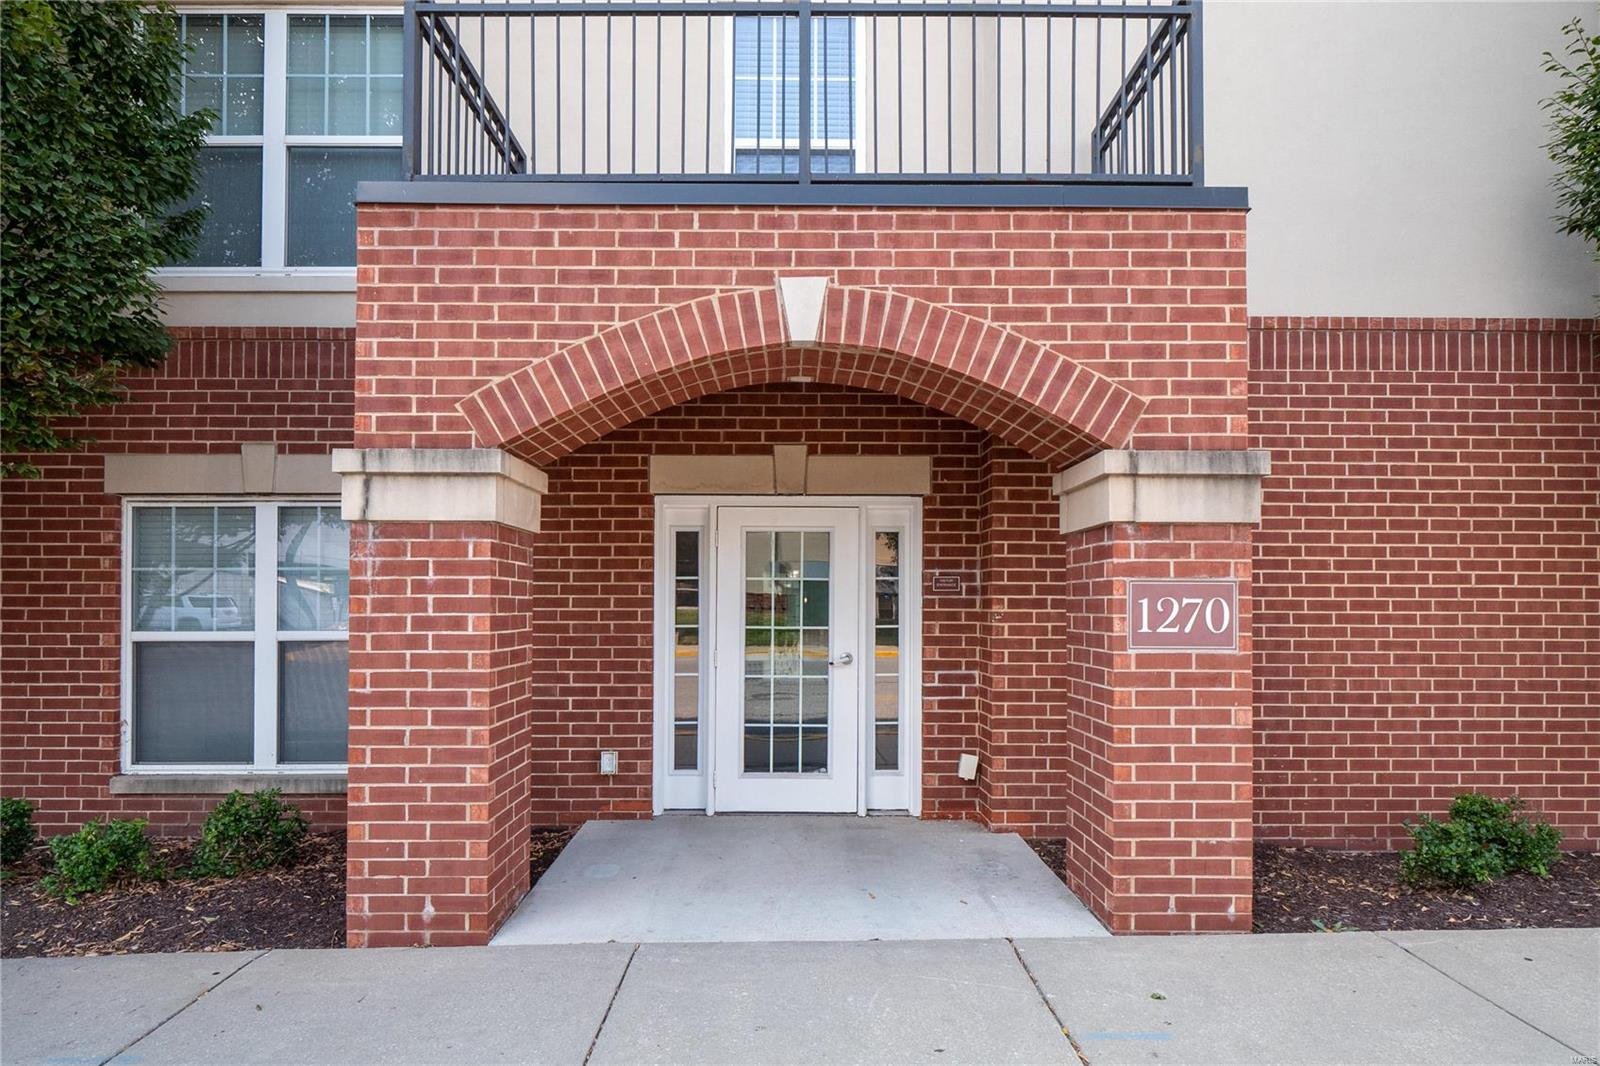 1270 Strassner Drive 3311, Brentwood, MO 63144